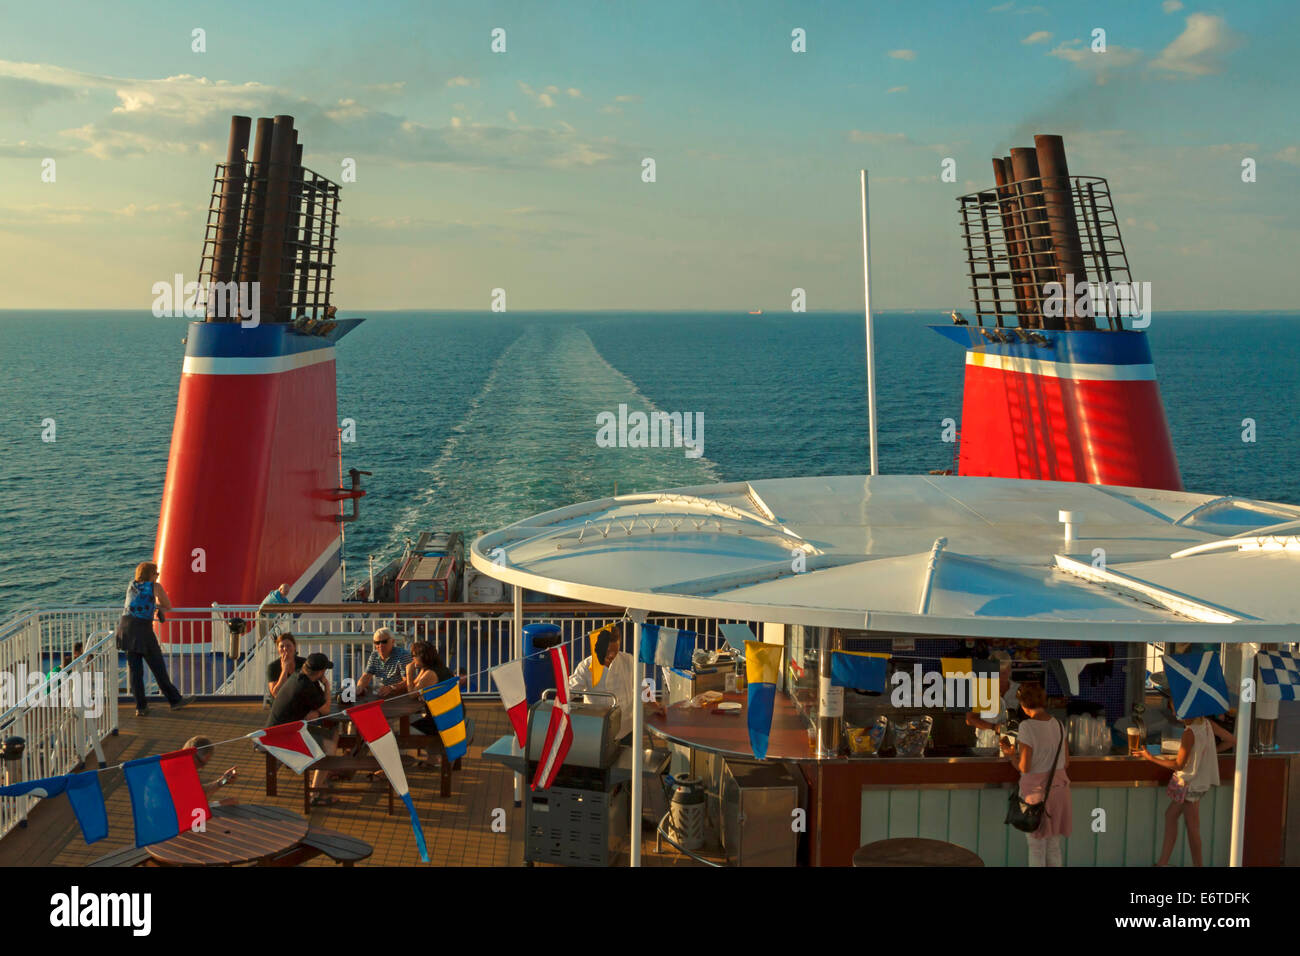 ferry benches stockfotos ferry benches bilder alamy. Black Bedroom Furniture Sets. Home Design Ideas